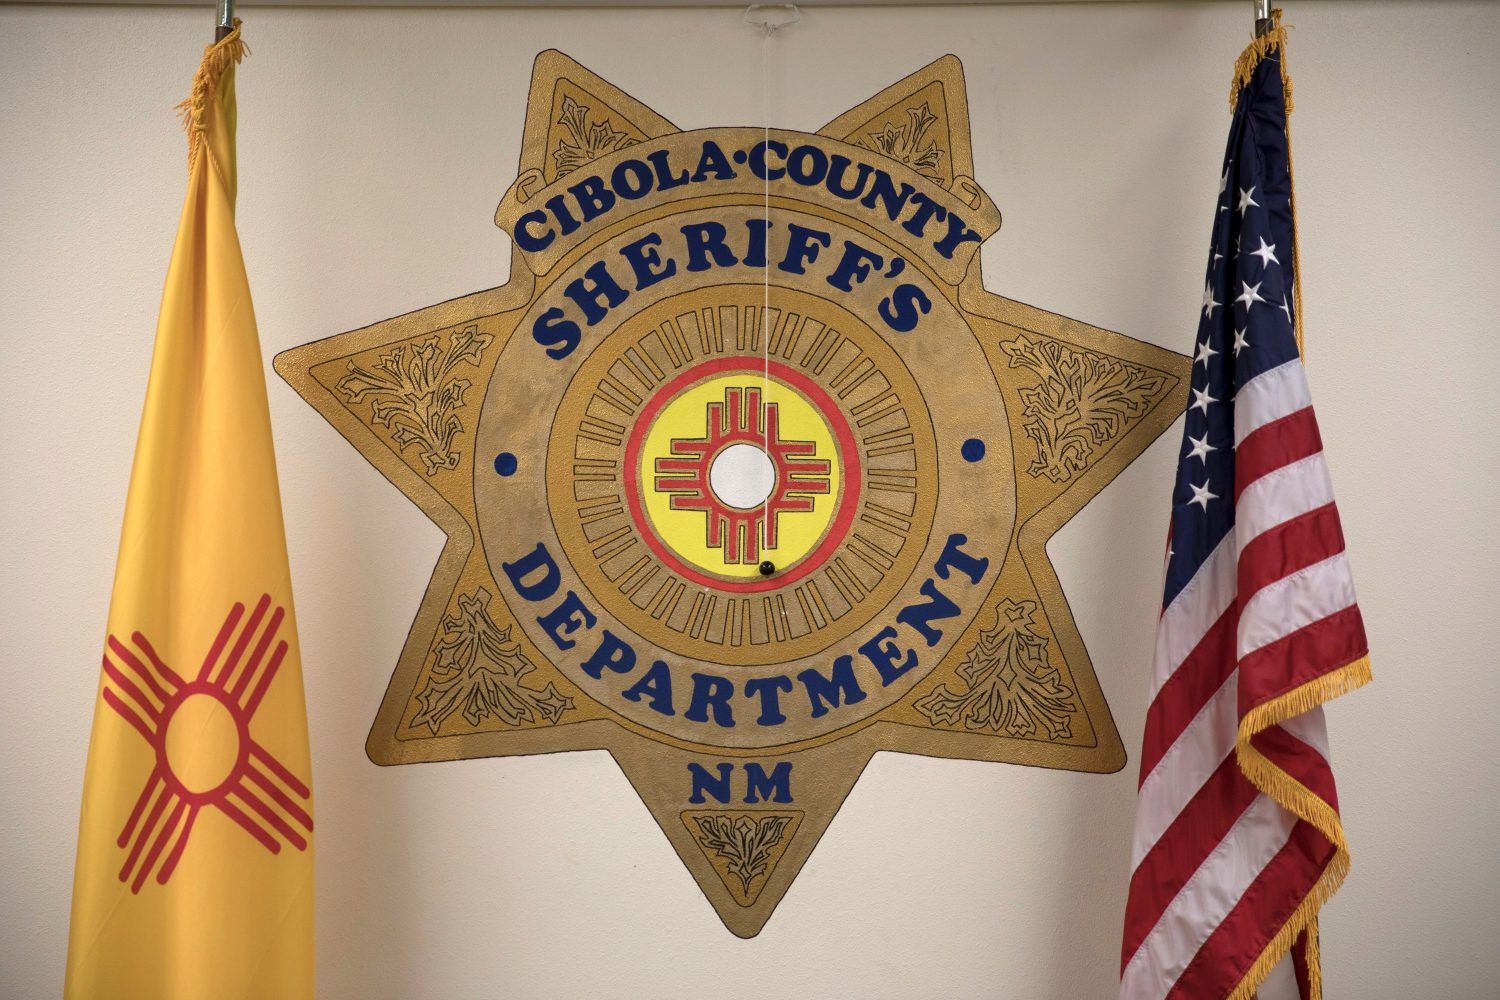 A view of the Cibola County Sheriff's Department sign in Grants, New Mexico, U.S., February 28, 2019. Picture taken February 28, 2019. REUTERS/Adria Malcolm